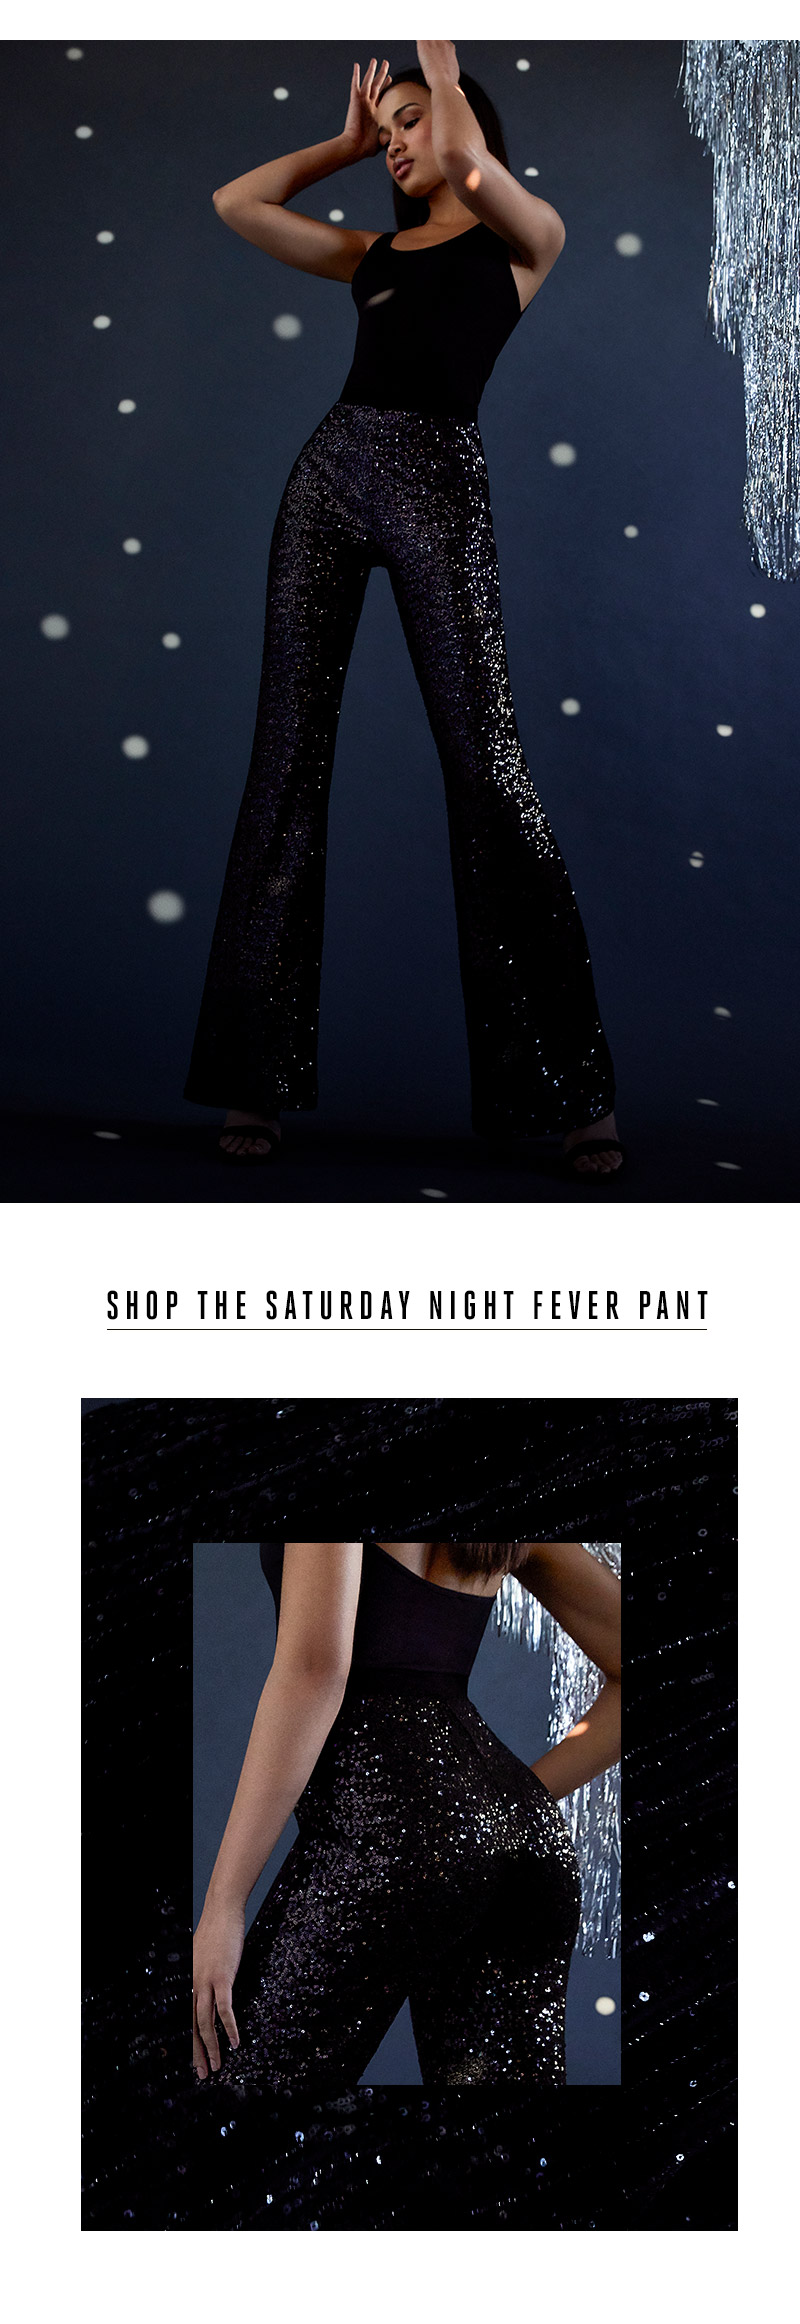 Shop the Saturday Night Fever Pant